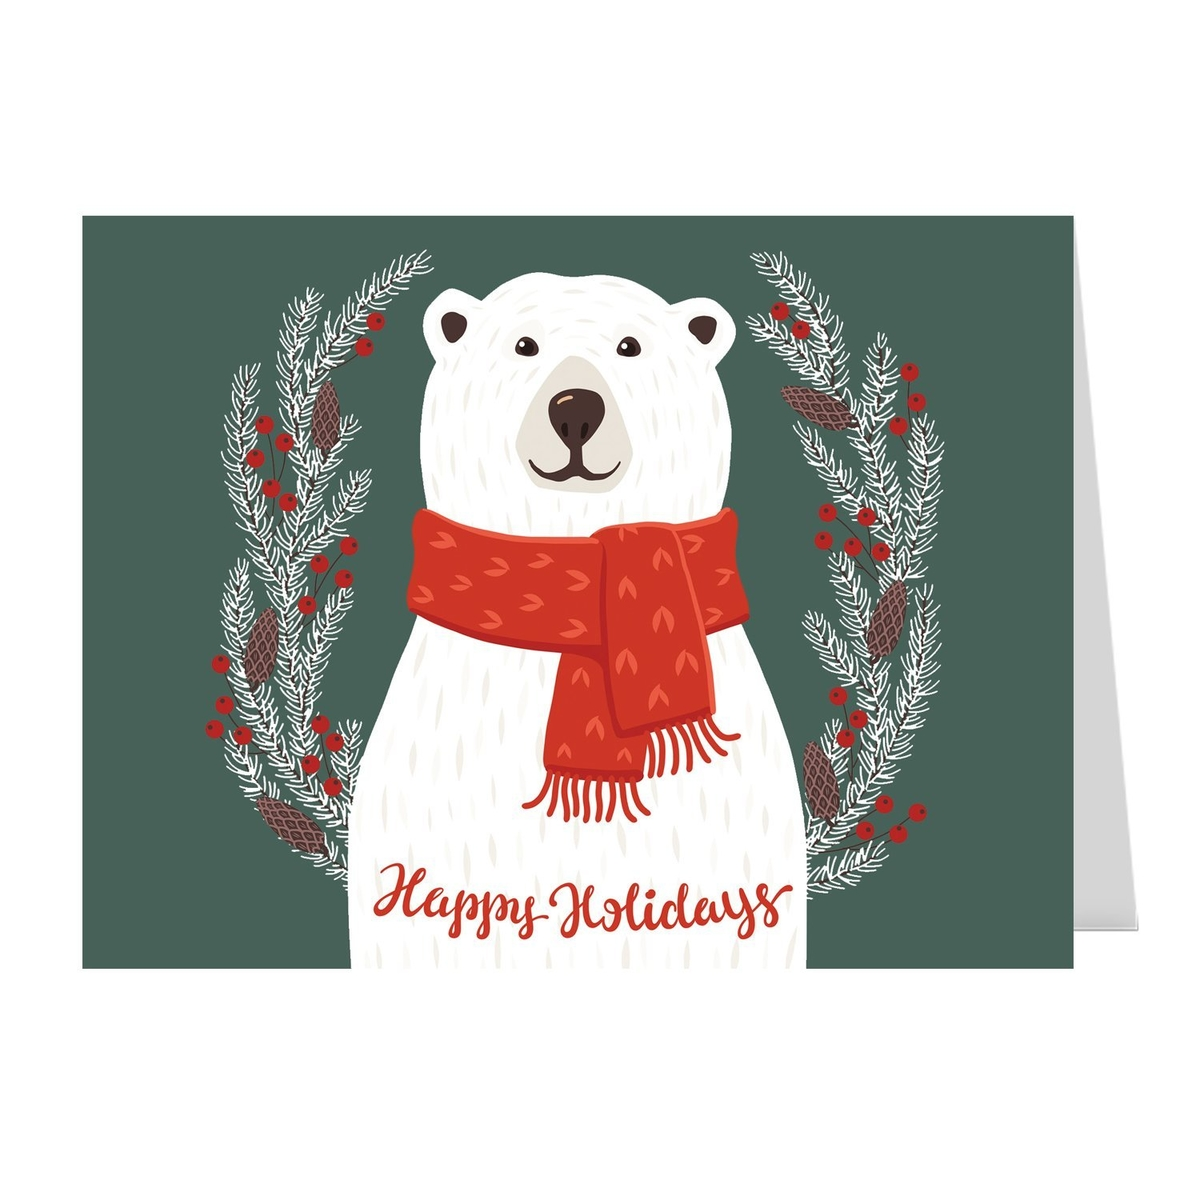 These holiday cards are too merry to miss dealtown us patch smiling polar bear holiday cards 25 pack send warm winter wishes to everyone you know with this festive and friendly polar bear card kristyandbryce Gallery